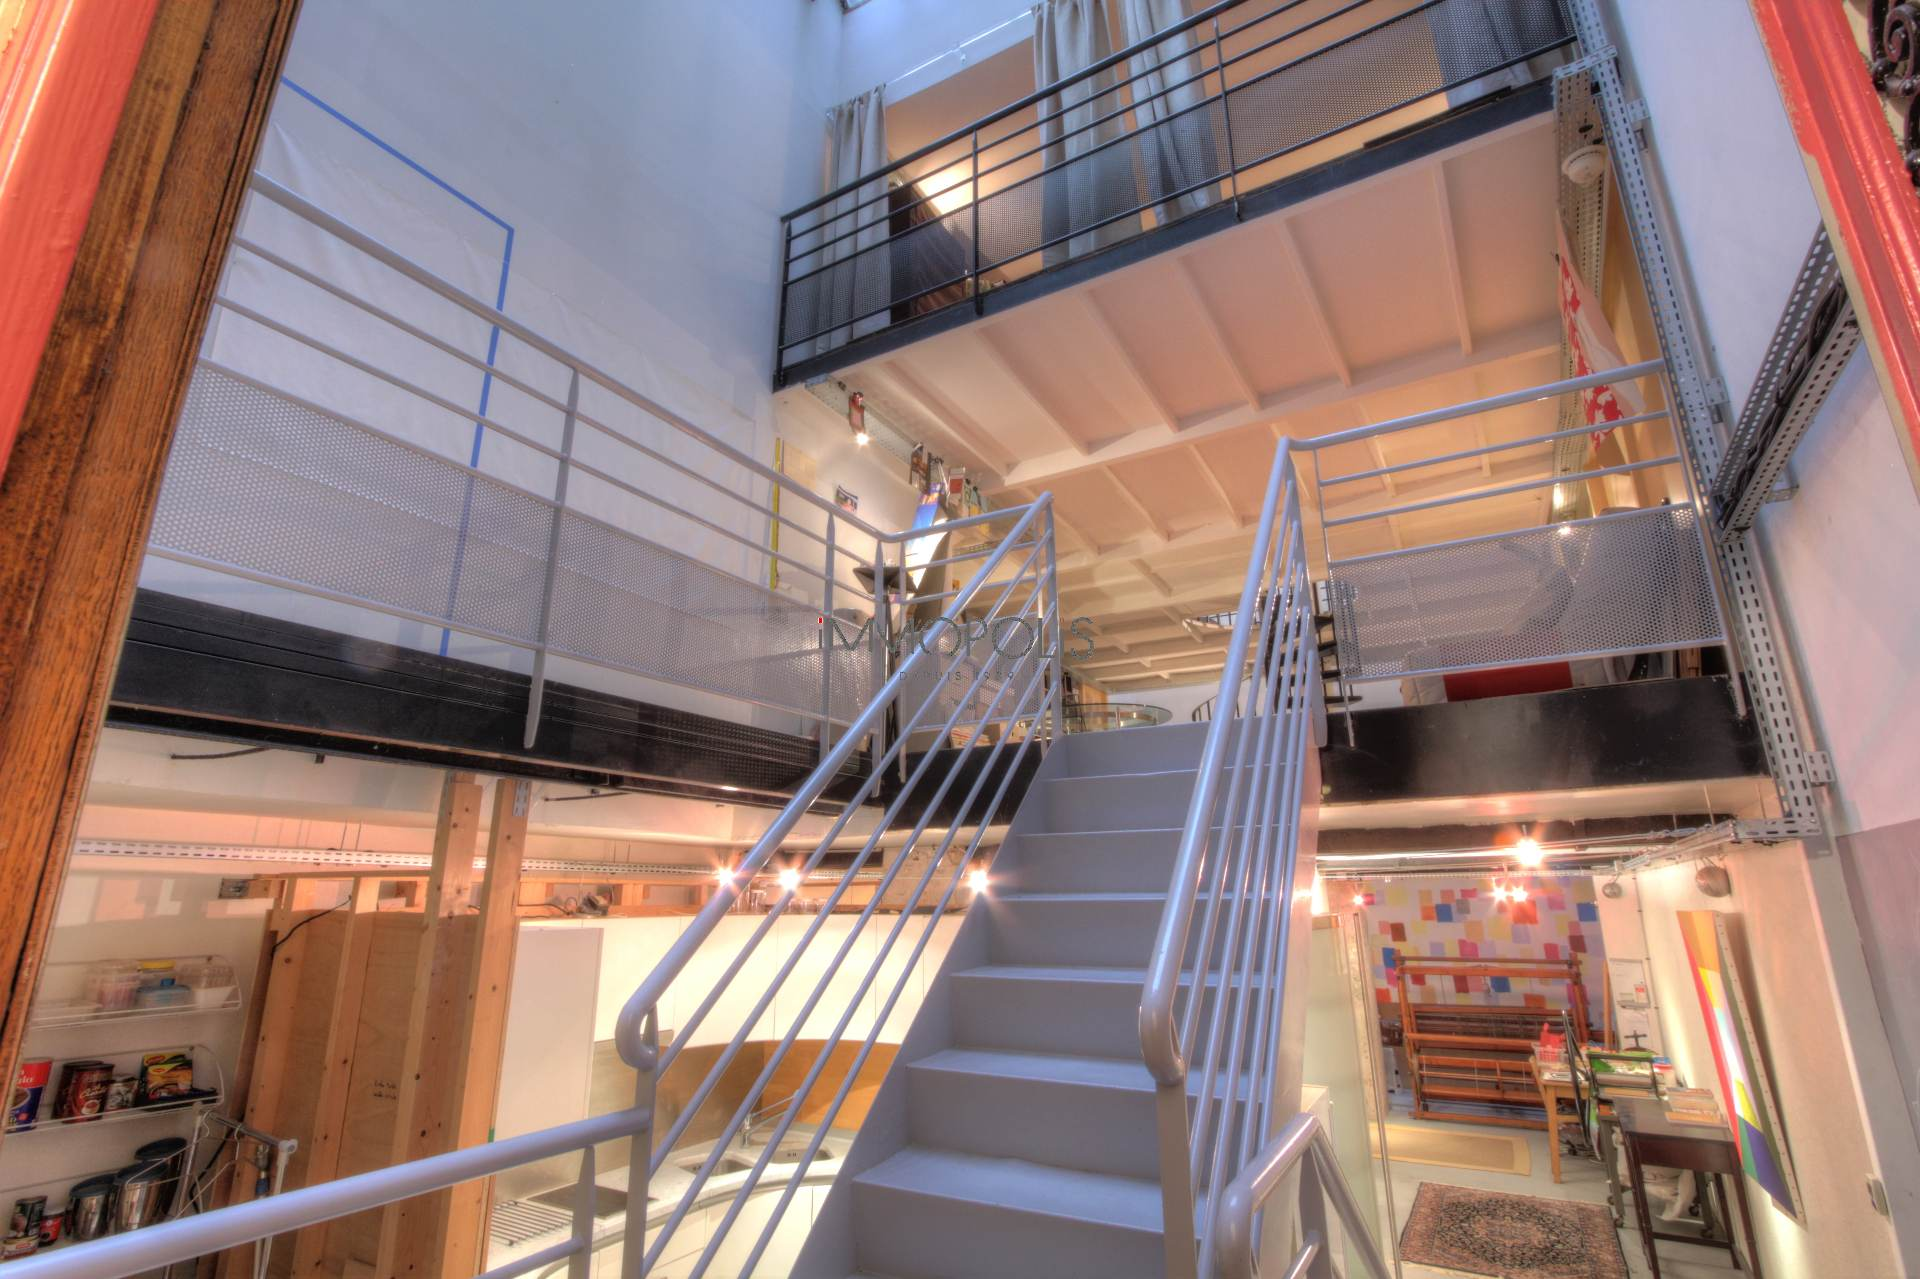 Totally atypical LOFT / ARTIST WORKSHOP, in OPEN-SPACE on three levels with TWO GLASS ROOMS overlooking a quiet courtyard! 2